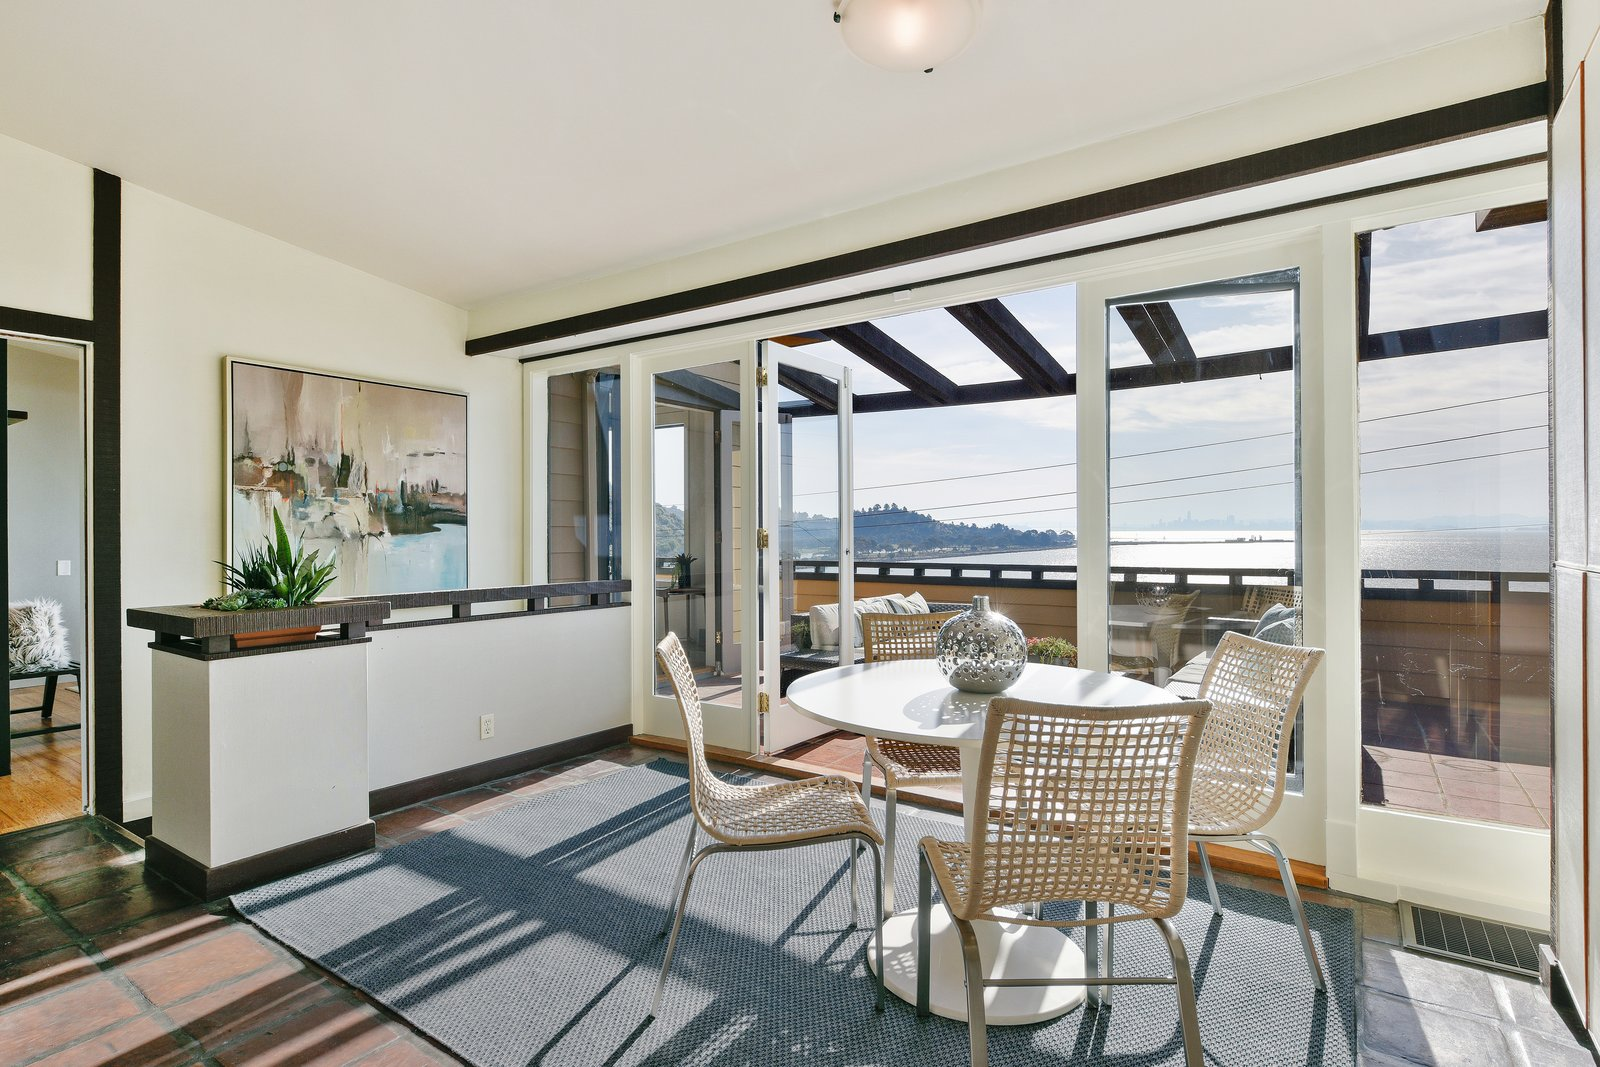 Dining Room, Ceiling Lighting, Rug Floor, Chair, and Table Full height glass doors allow the viewing terrace to blend seamlessly into the interior breakfast nook.  Photo 7 of 14 in A Bay Area Jewel With Golden Gate Views Wants $1.55M